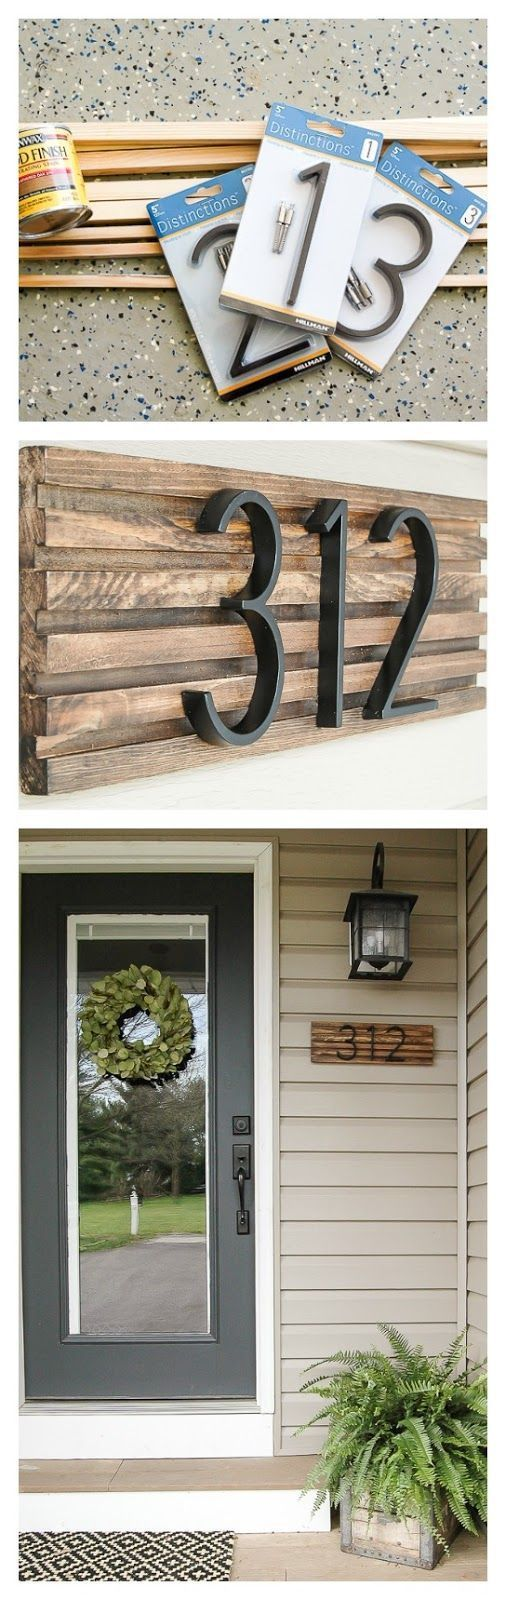 How to make a modern house number sign from square dowels. www.littlehouseoffour.com: